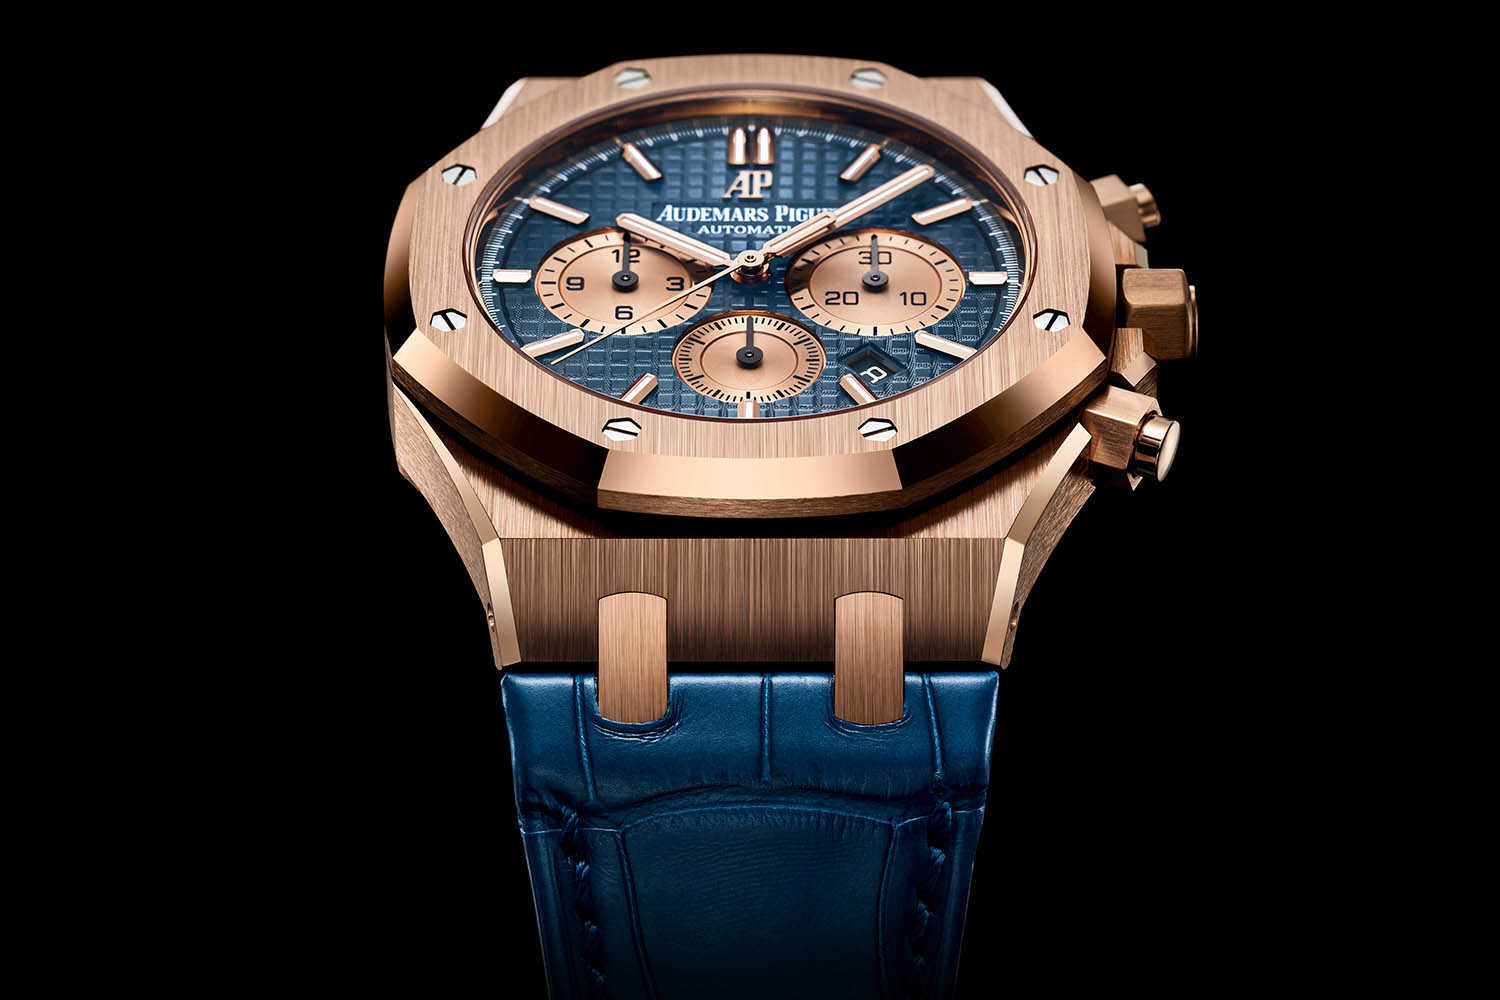 Introducing New Audemars Piguet Royal Oak Chronograph